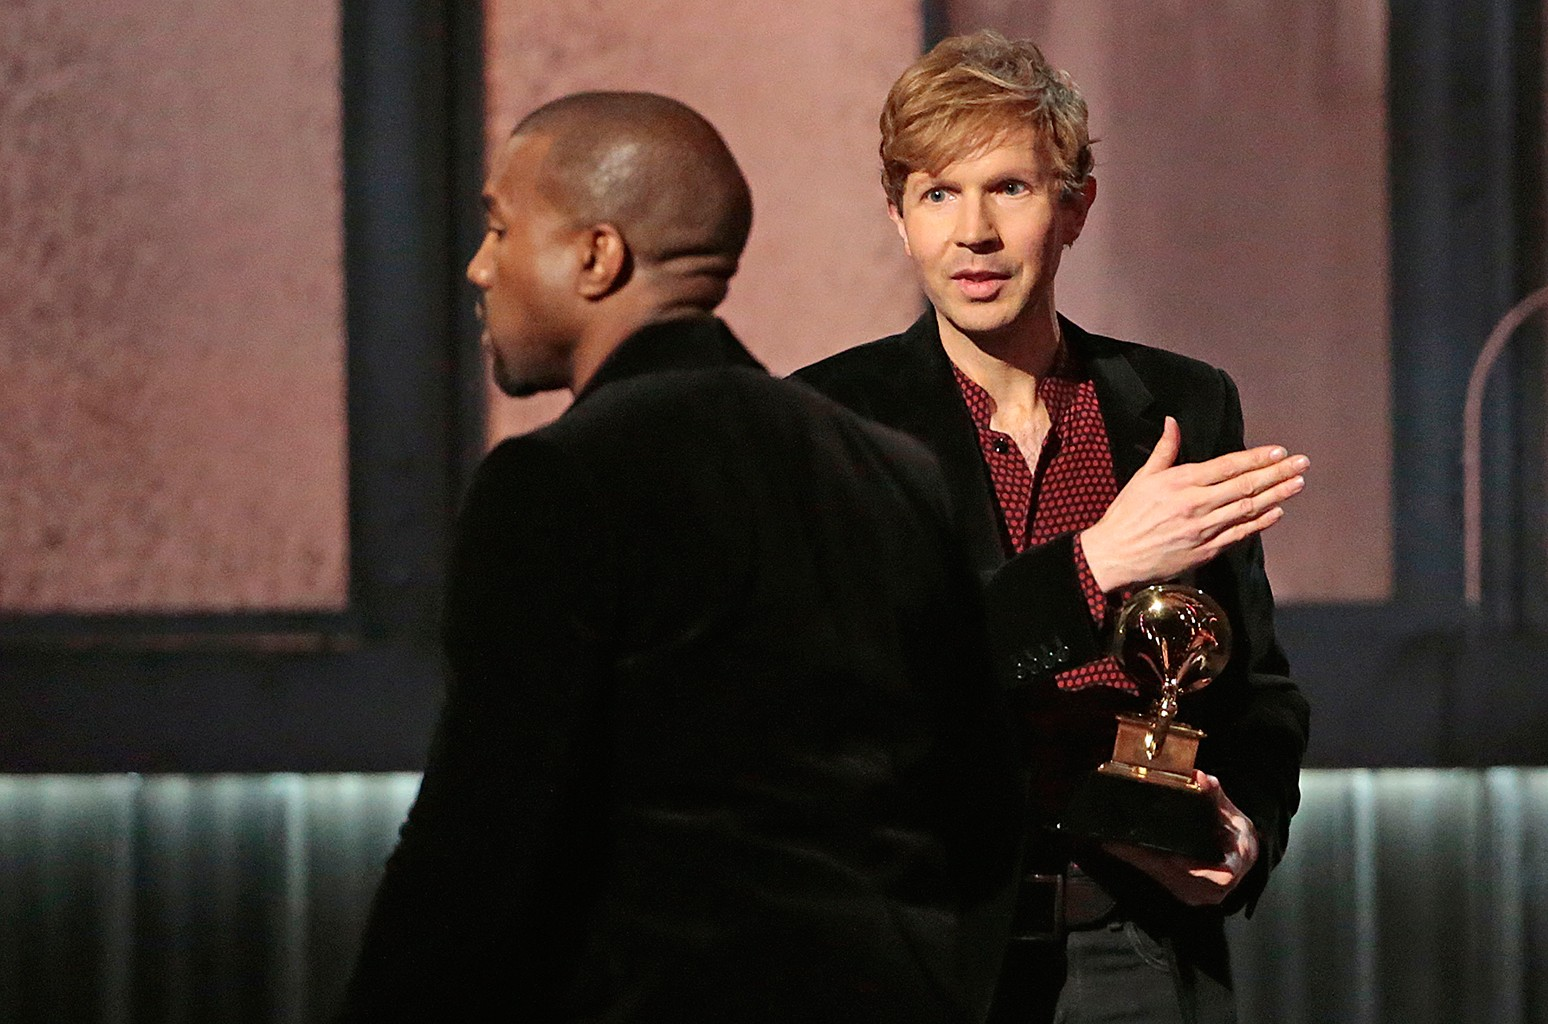 Kanye West avoids contact with an inviting Beck after Beck won Album of the Year at the 57th Annual GRAMMY Awards at Staples Center in Los Angeles on Feb. 8, 2015.